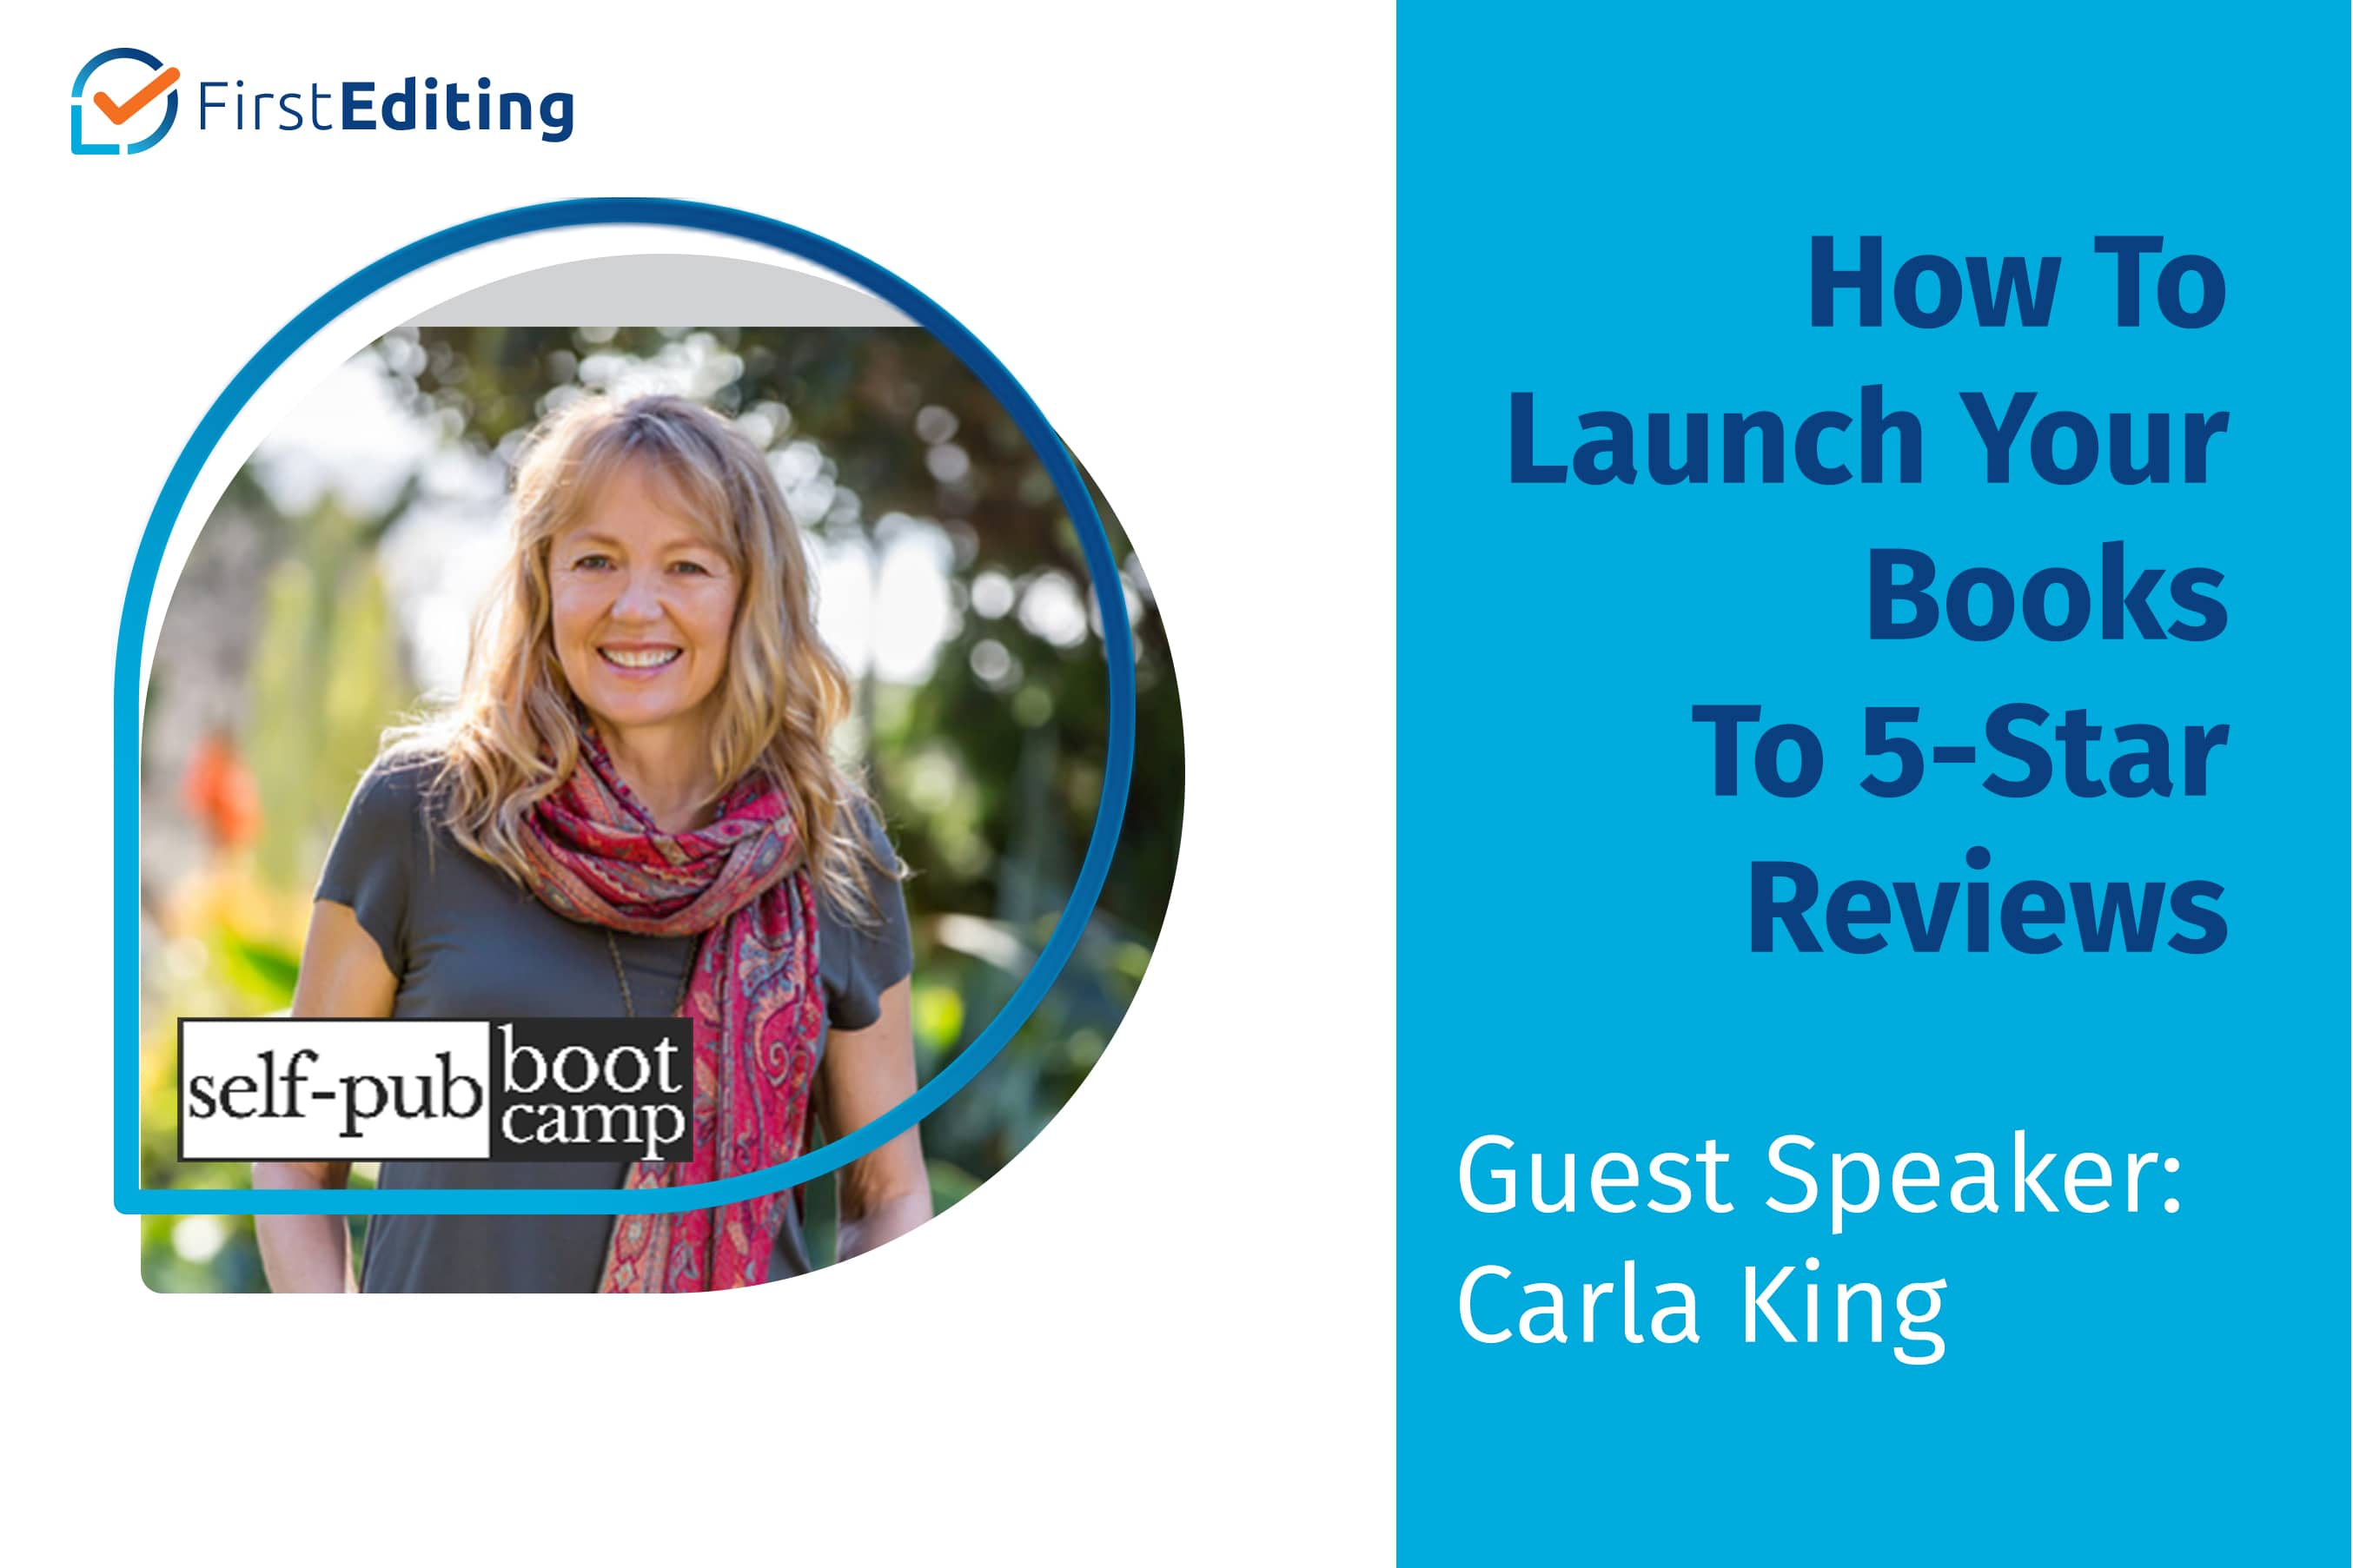 How To Launch Your Book To 5-Star Reviews with Carla King